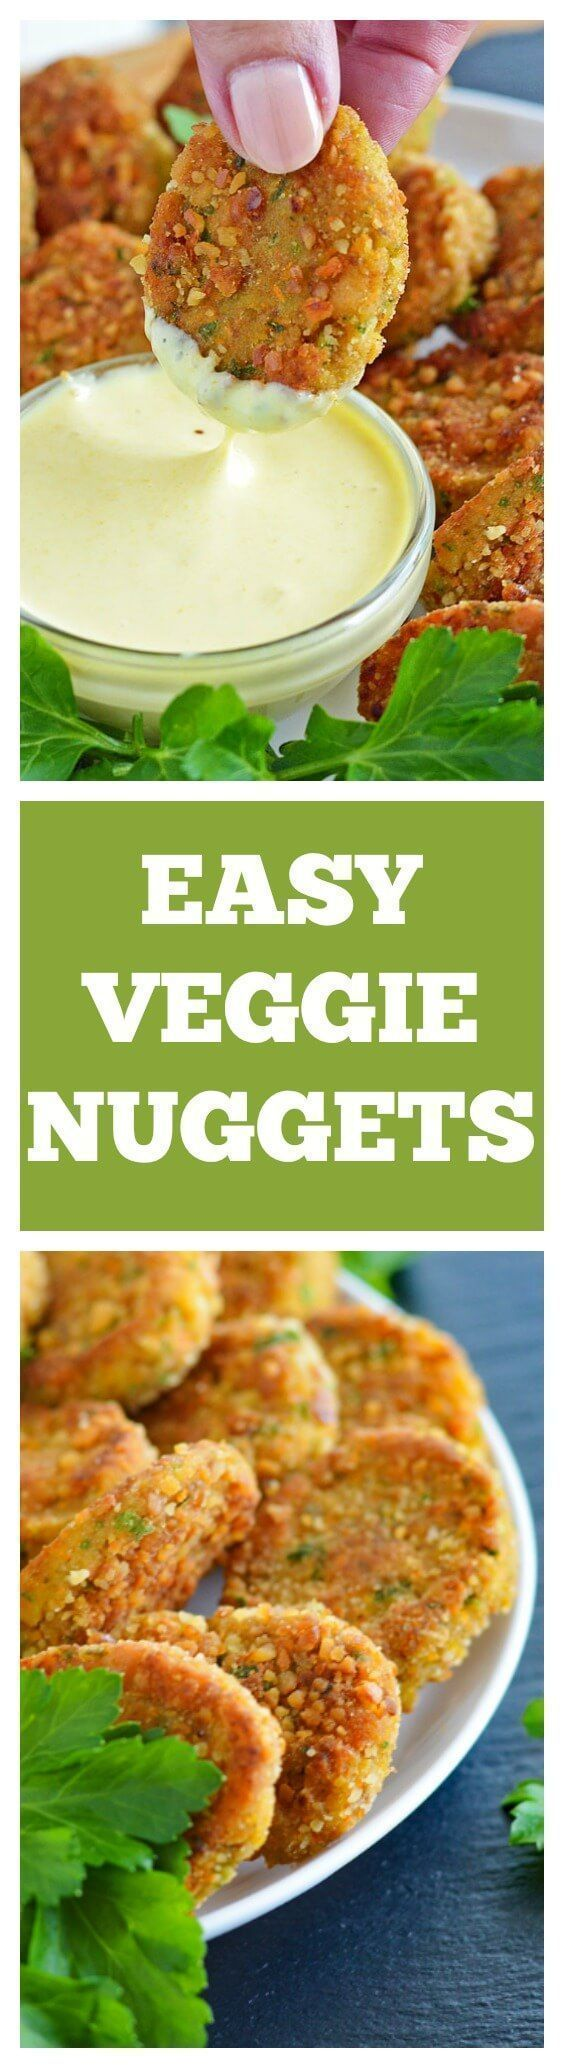 Veggie Nuggets with VEGAN Honey Mustard Dipping Sauce